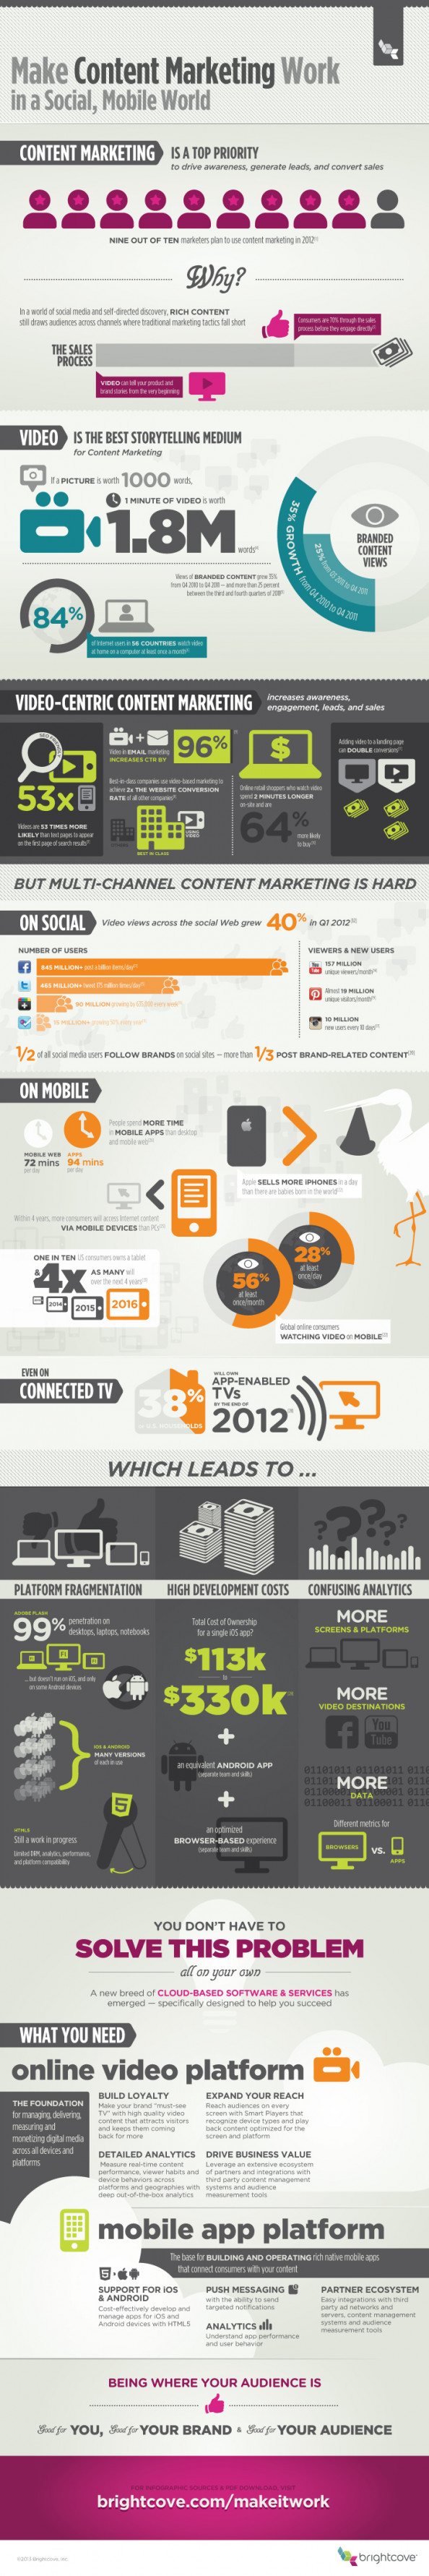 Make Content Marketing Work in a Social, Mobile World Infographic